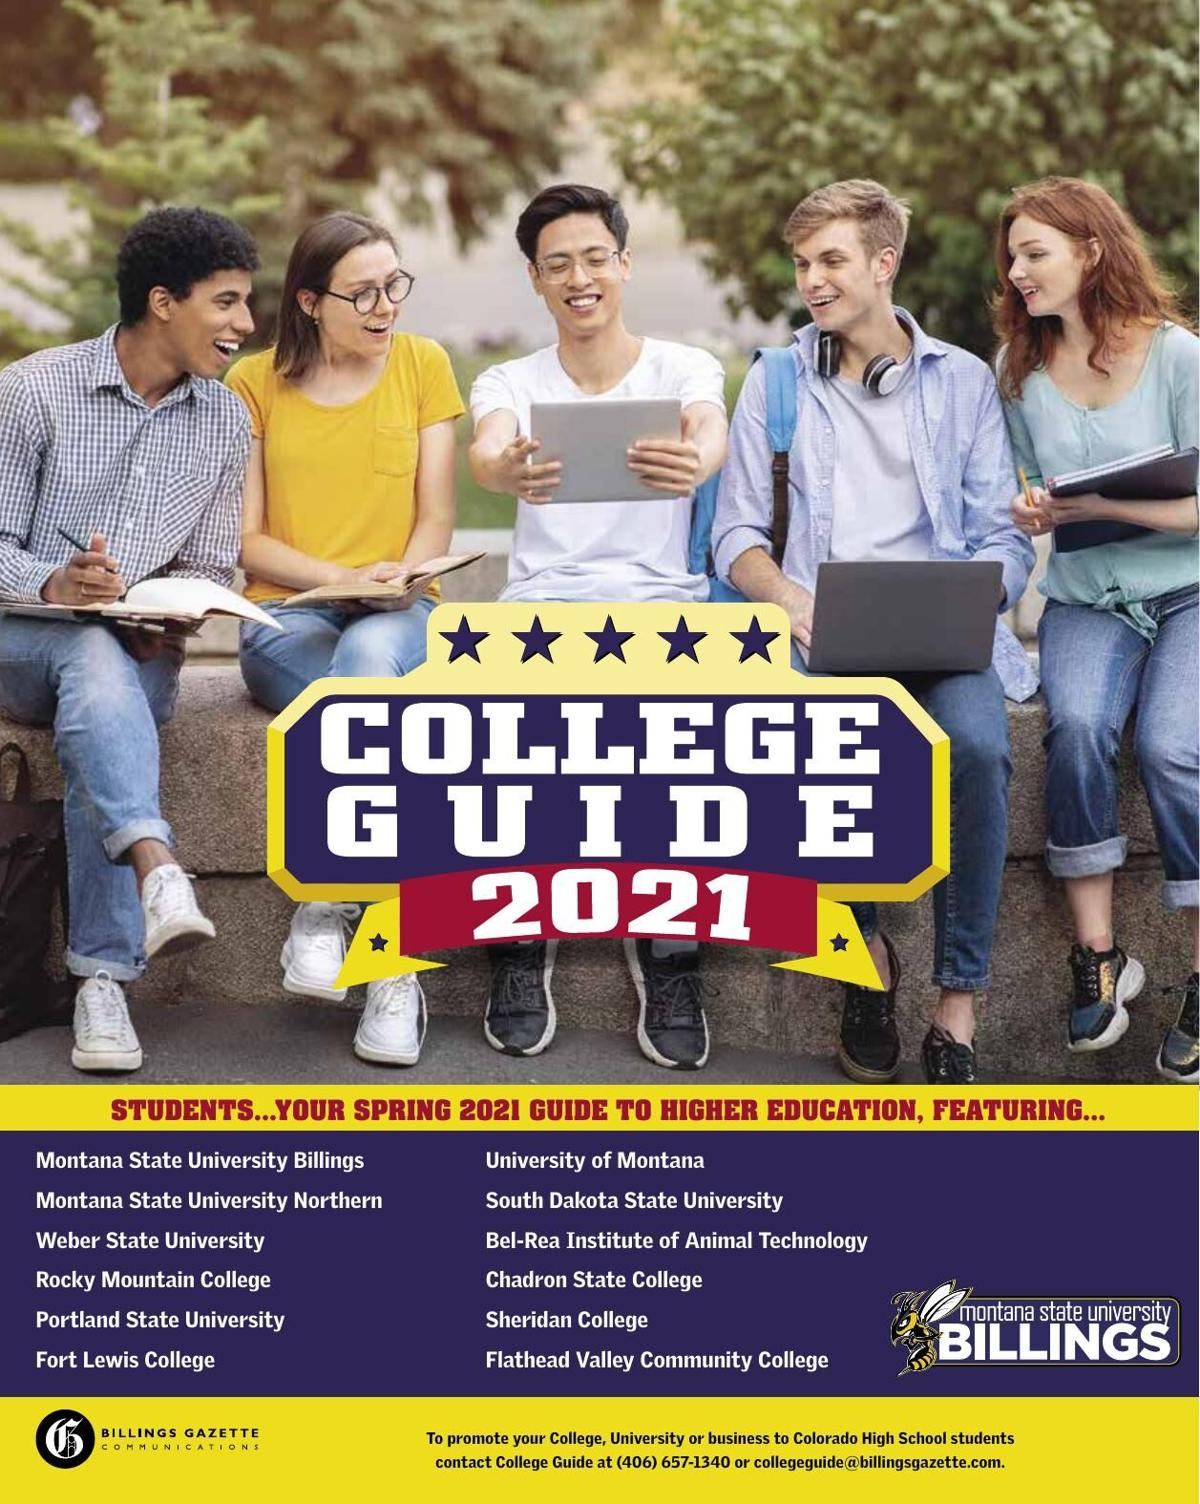 College Guide for Colorado students - Spring 2021